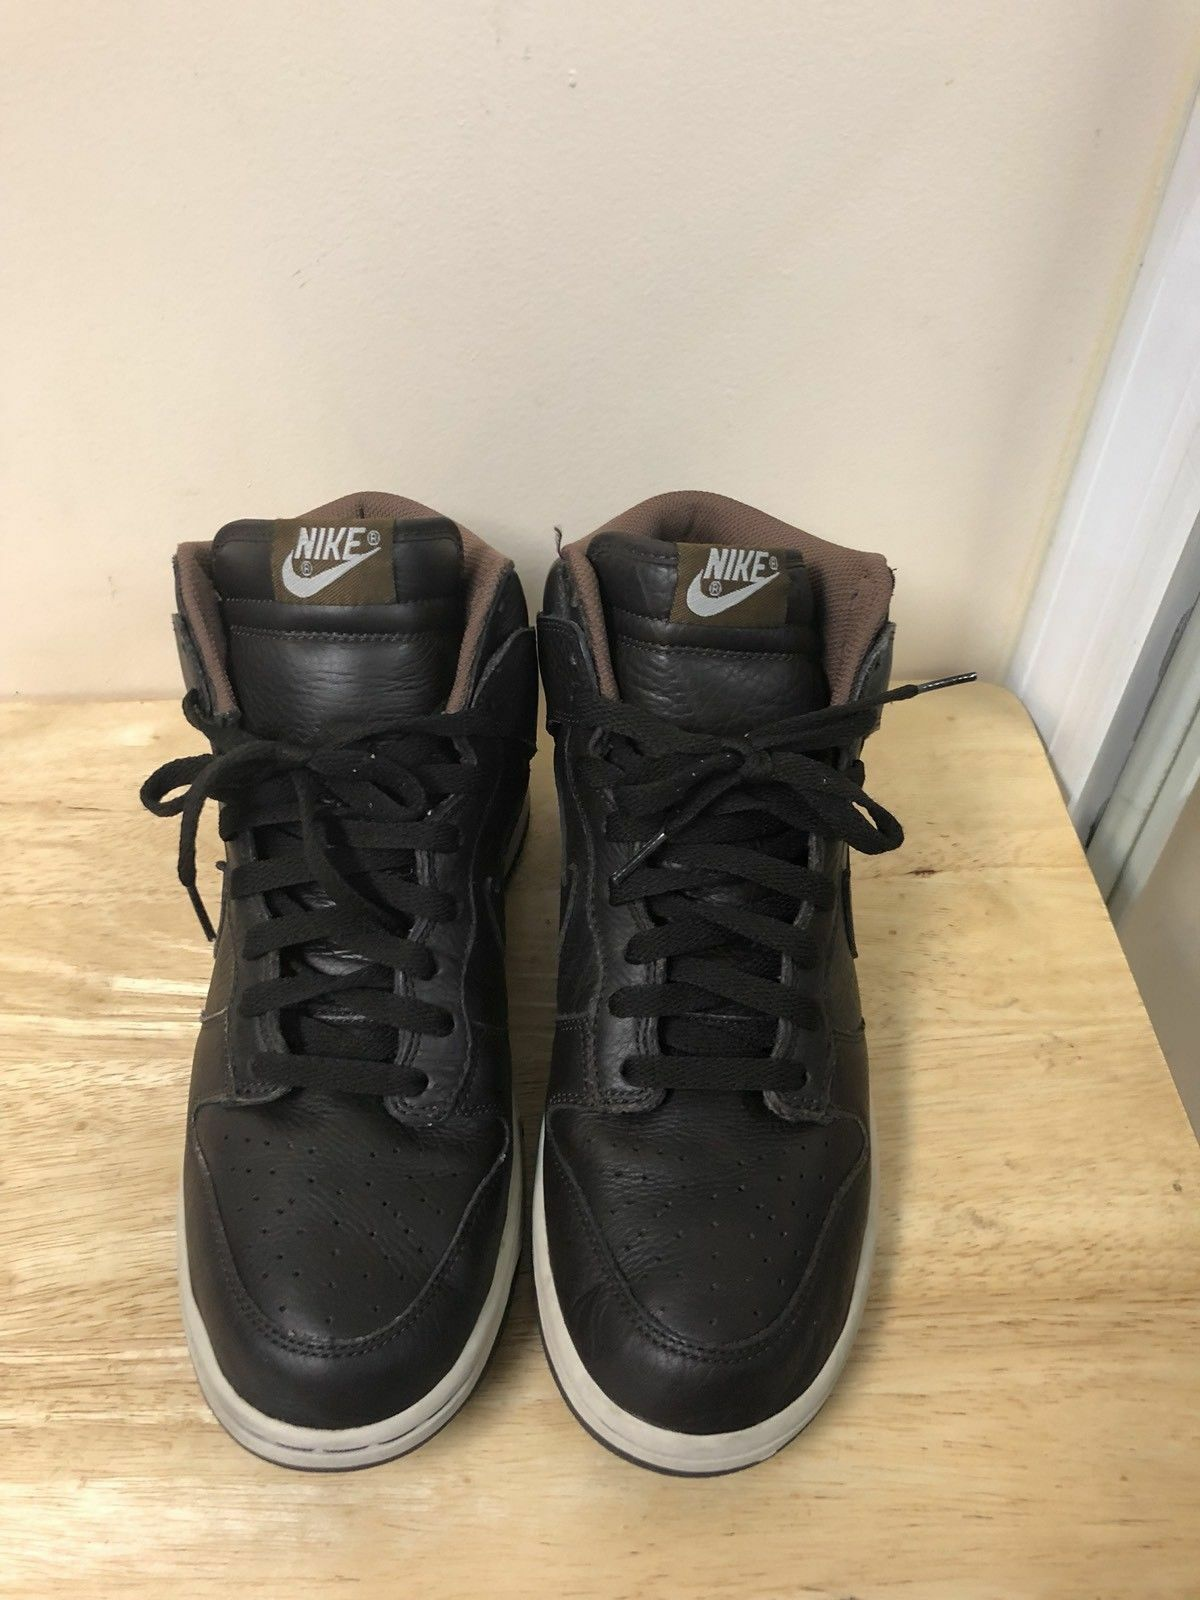 the latest 3331b 7c075 Nike Dunk High High High Leather Brown Men Size 10.5 Shoes Sneakers  312786-222 d85fda